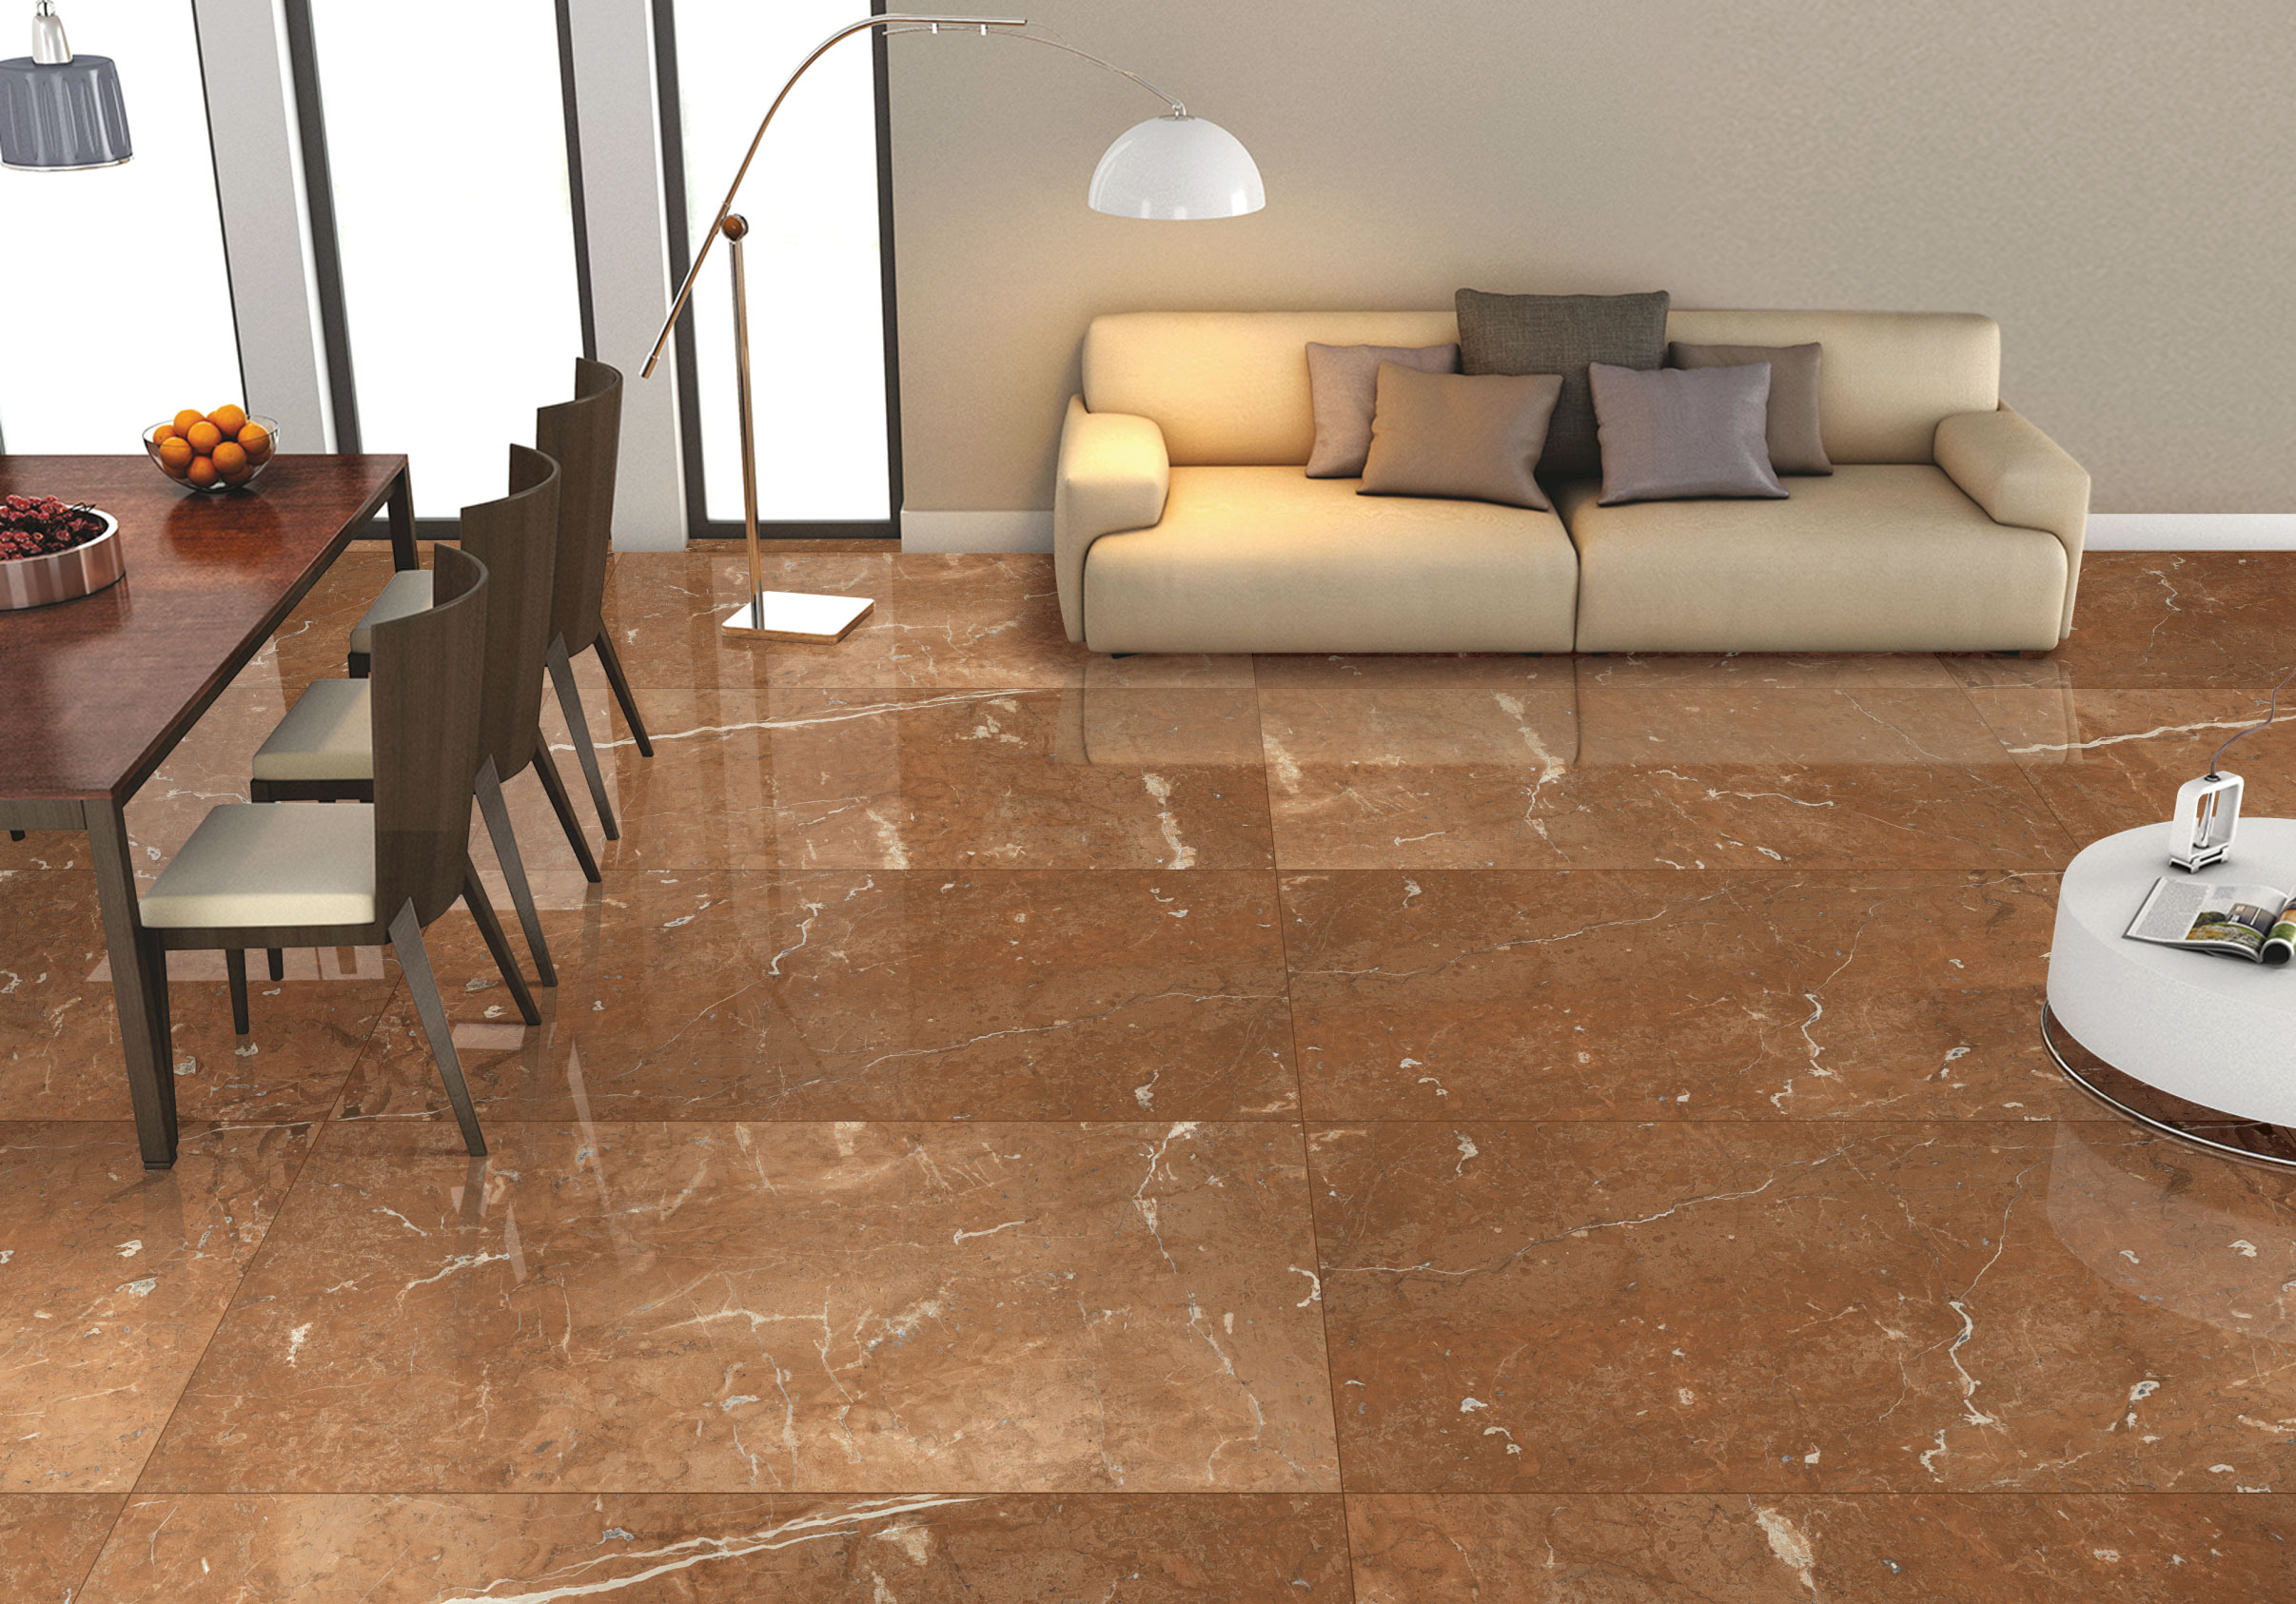 Tile Contractor Cost Find Top Rated Ceramic Tile Installers Near You